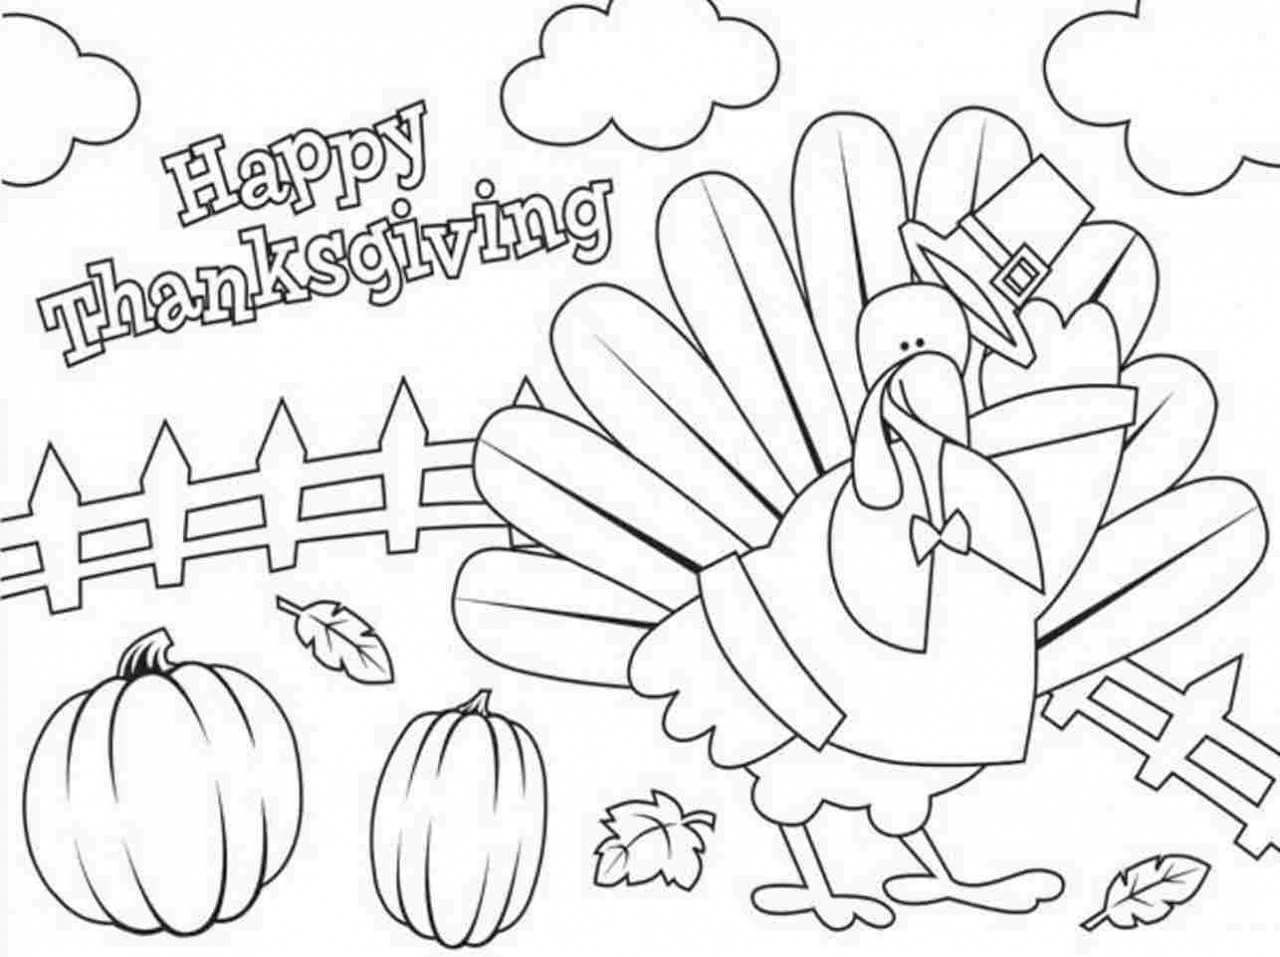 Cool Thanksgiving Coloring Pages For Children | Thanksgiving